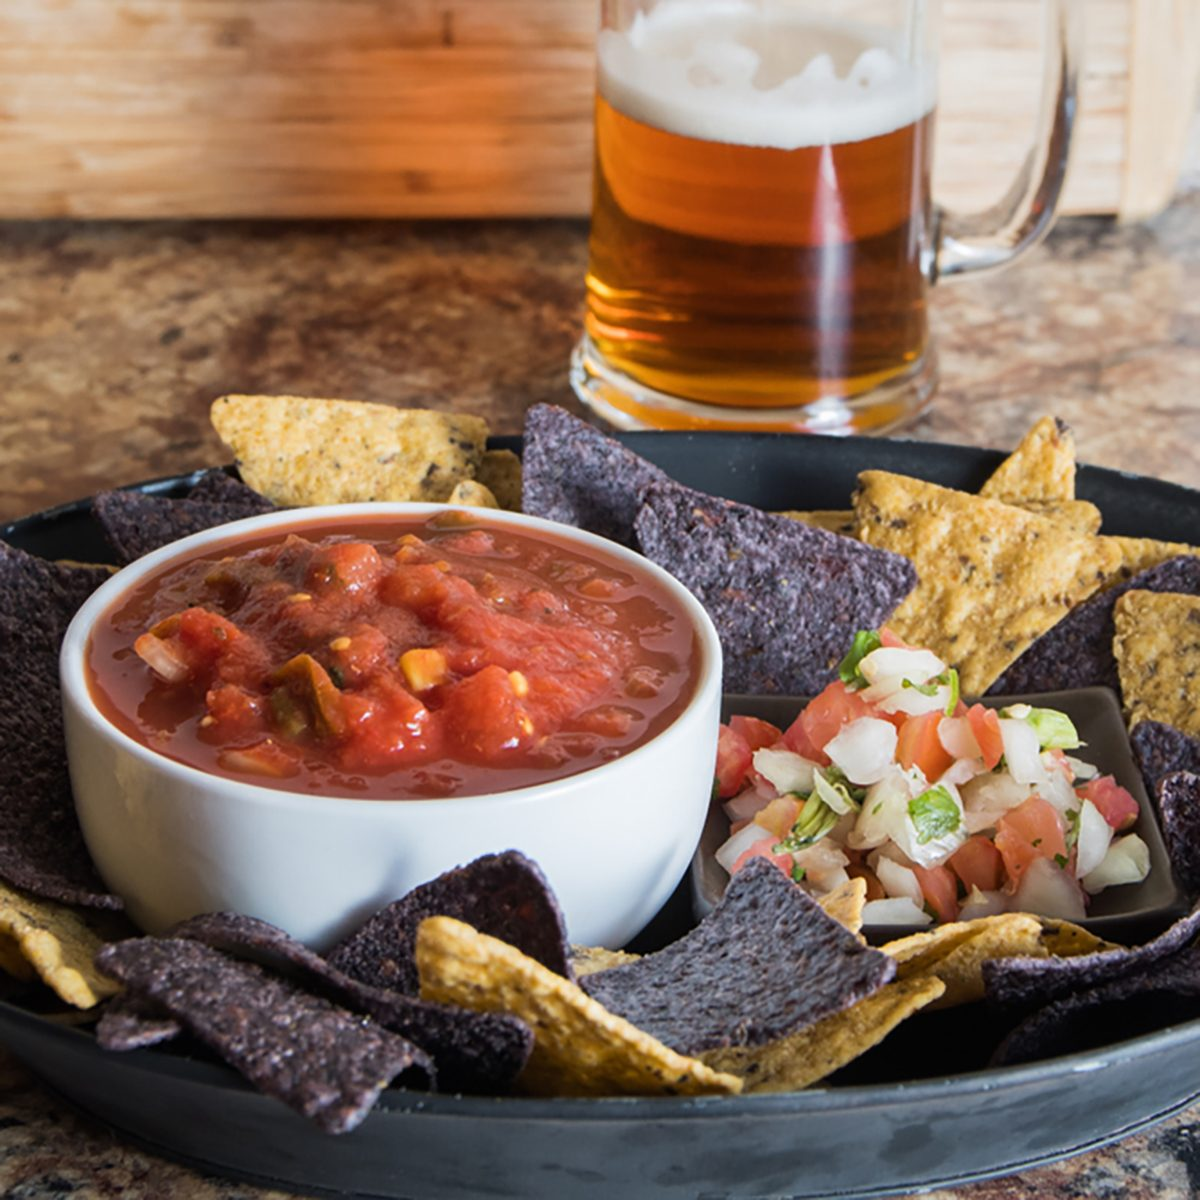 Platter with chips and salsa and pico de gallo and a beer